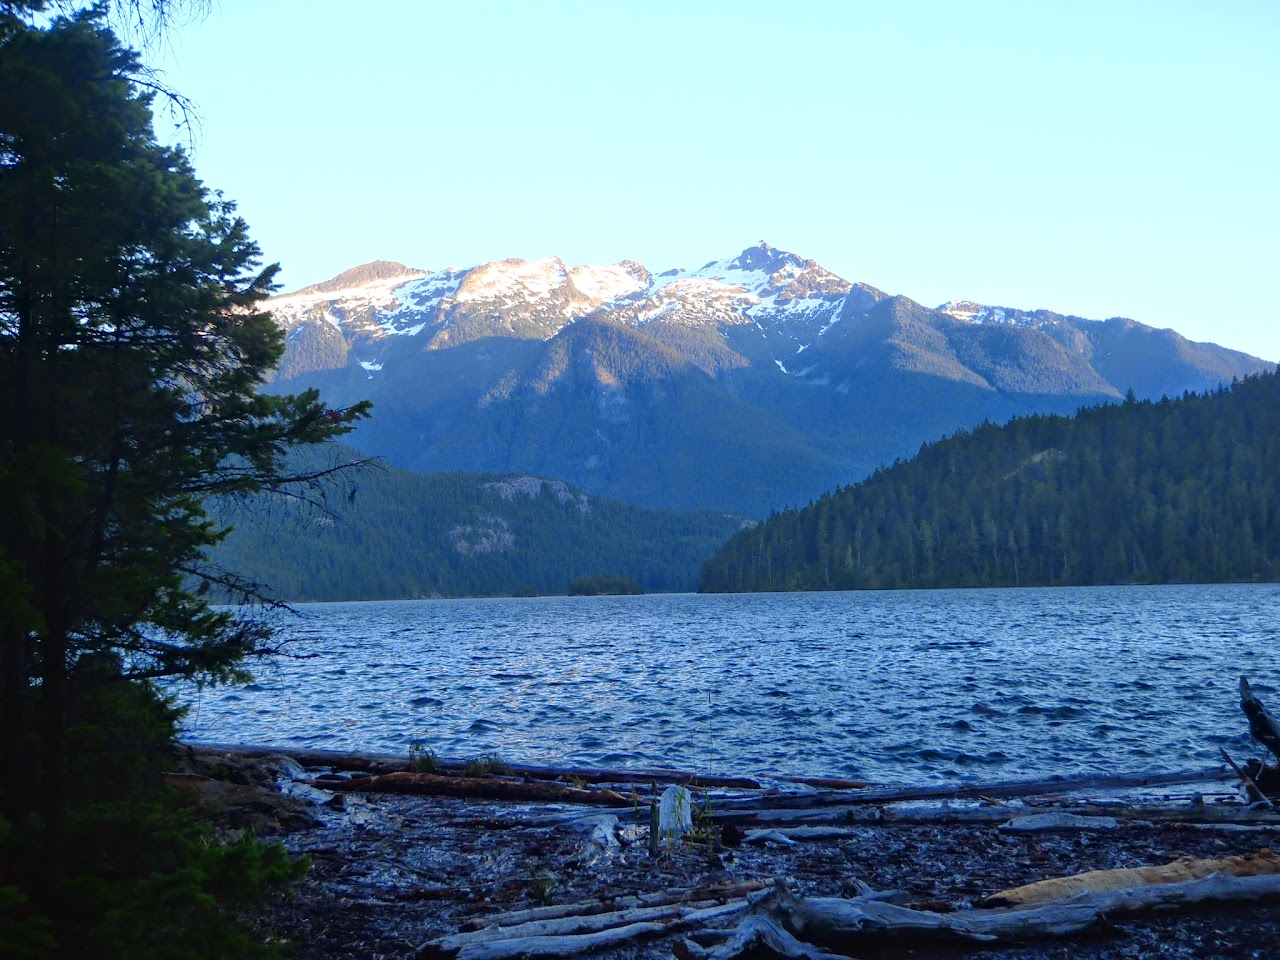 Ross Lake July 2014 - P7110145.JPG